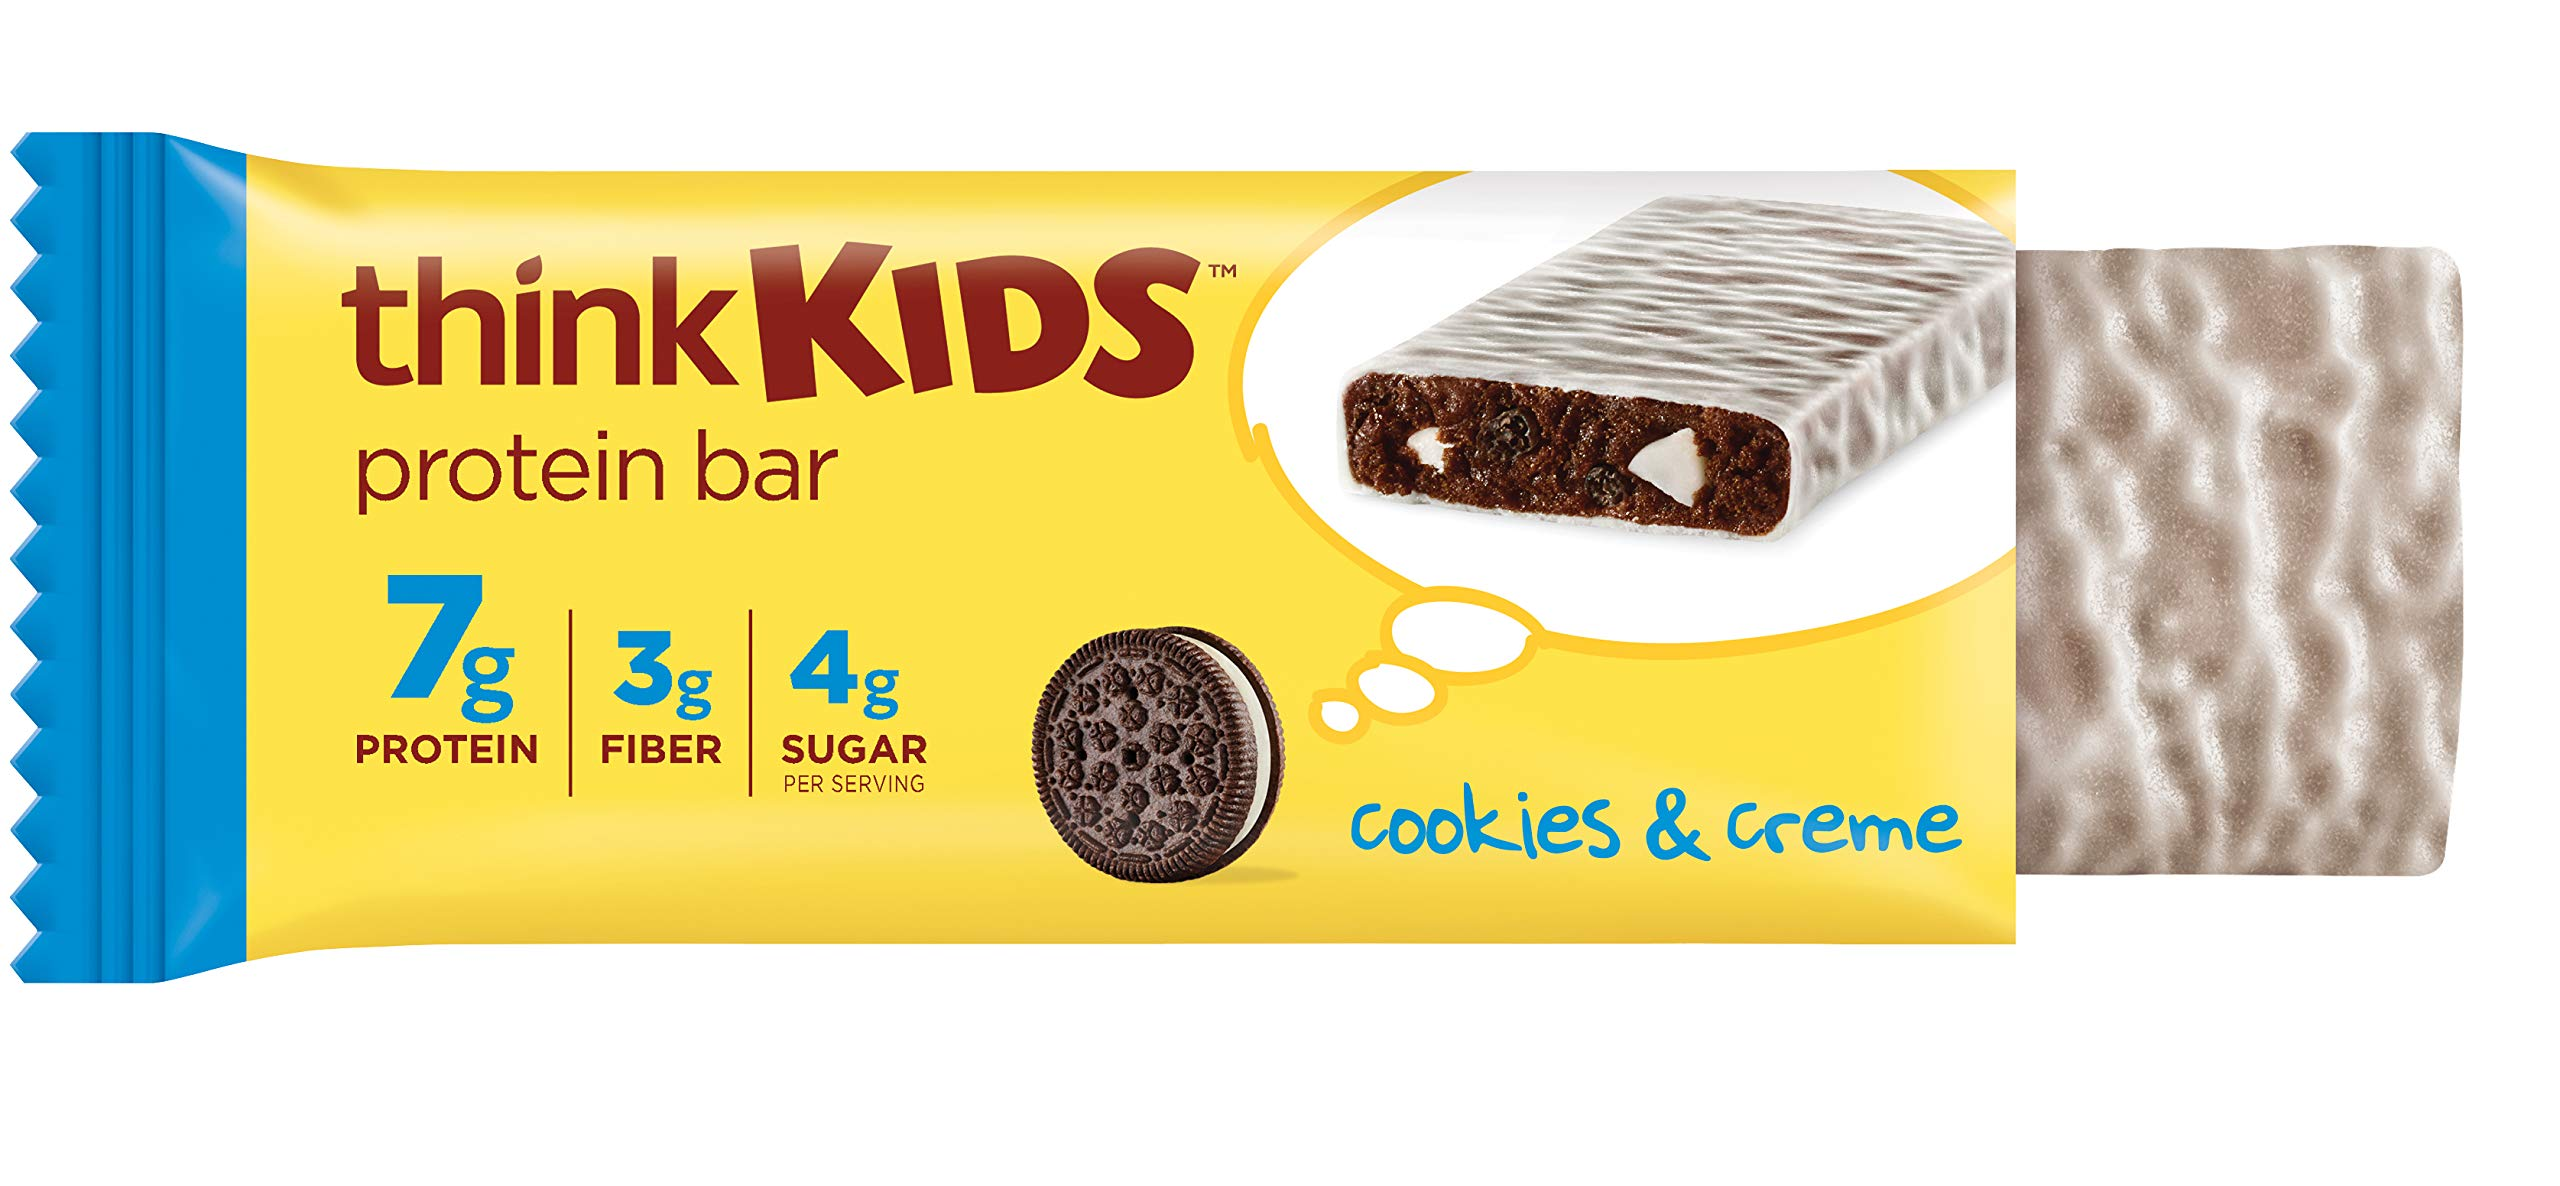 think! thinkKIDS Protein Bars - Cookies & Creme 7g Protein, 3g Fiber, 4g Sugar, No Artificial Flavors or Colors, Gluten Free, GMO Free*, 1 oz bar (5 Count)